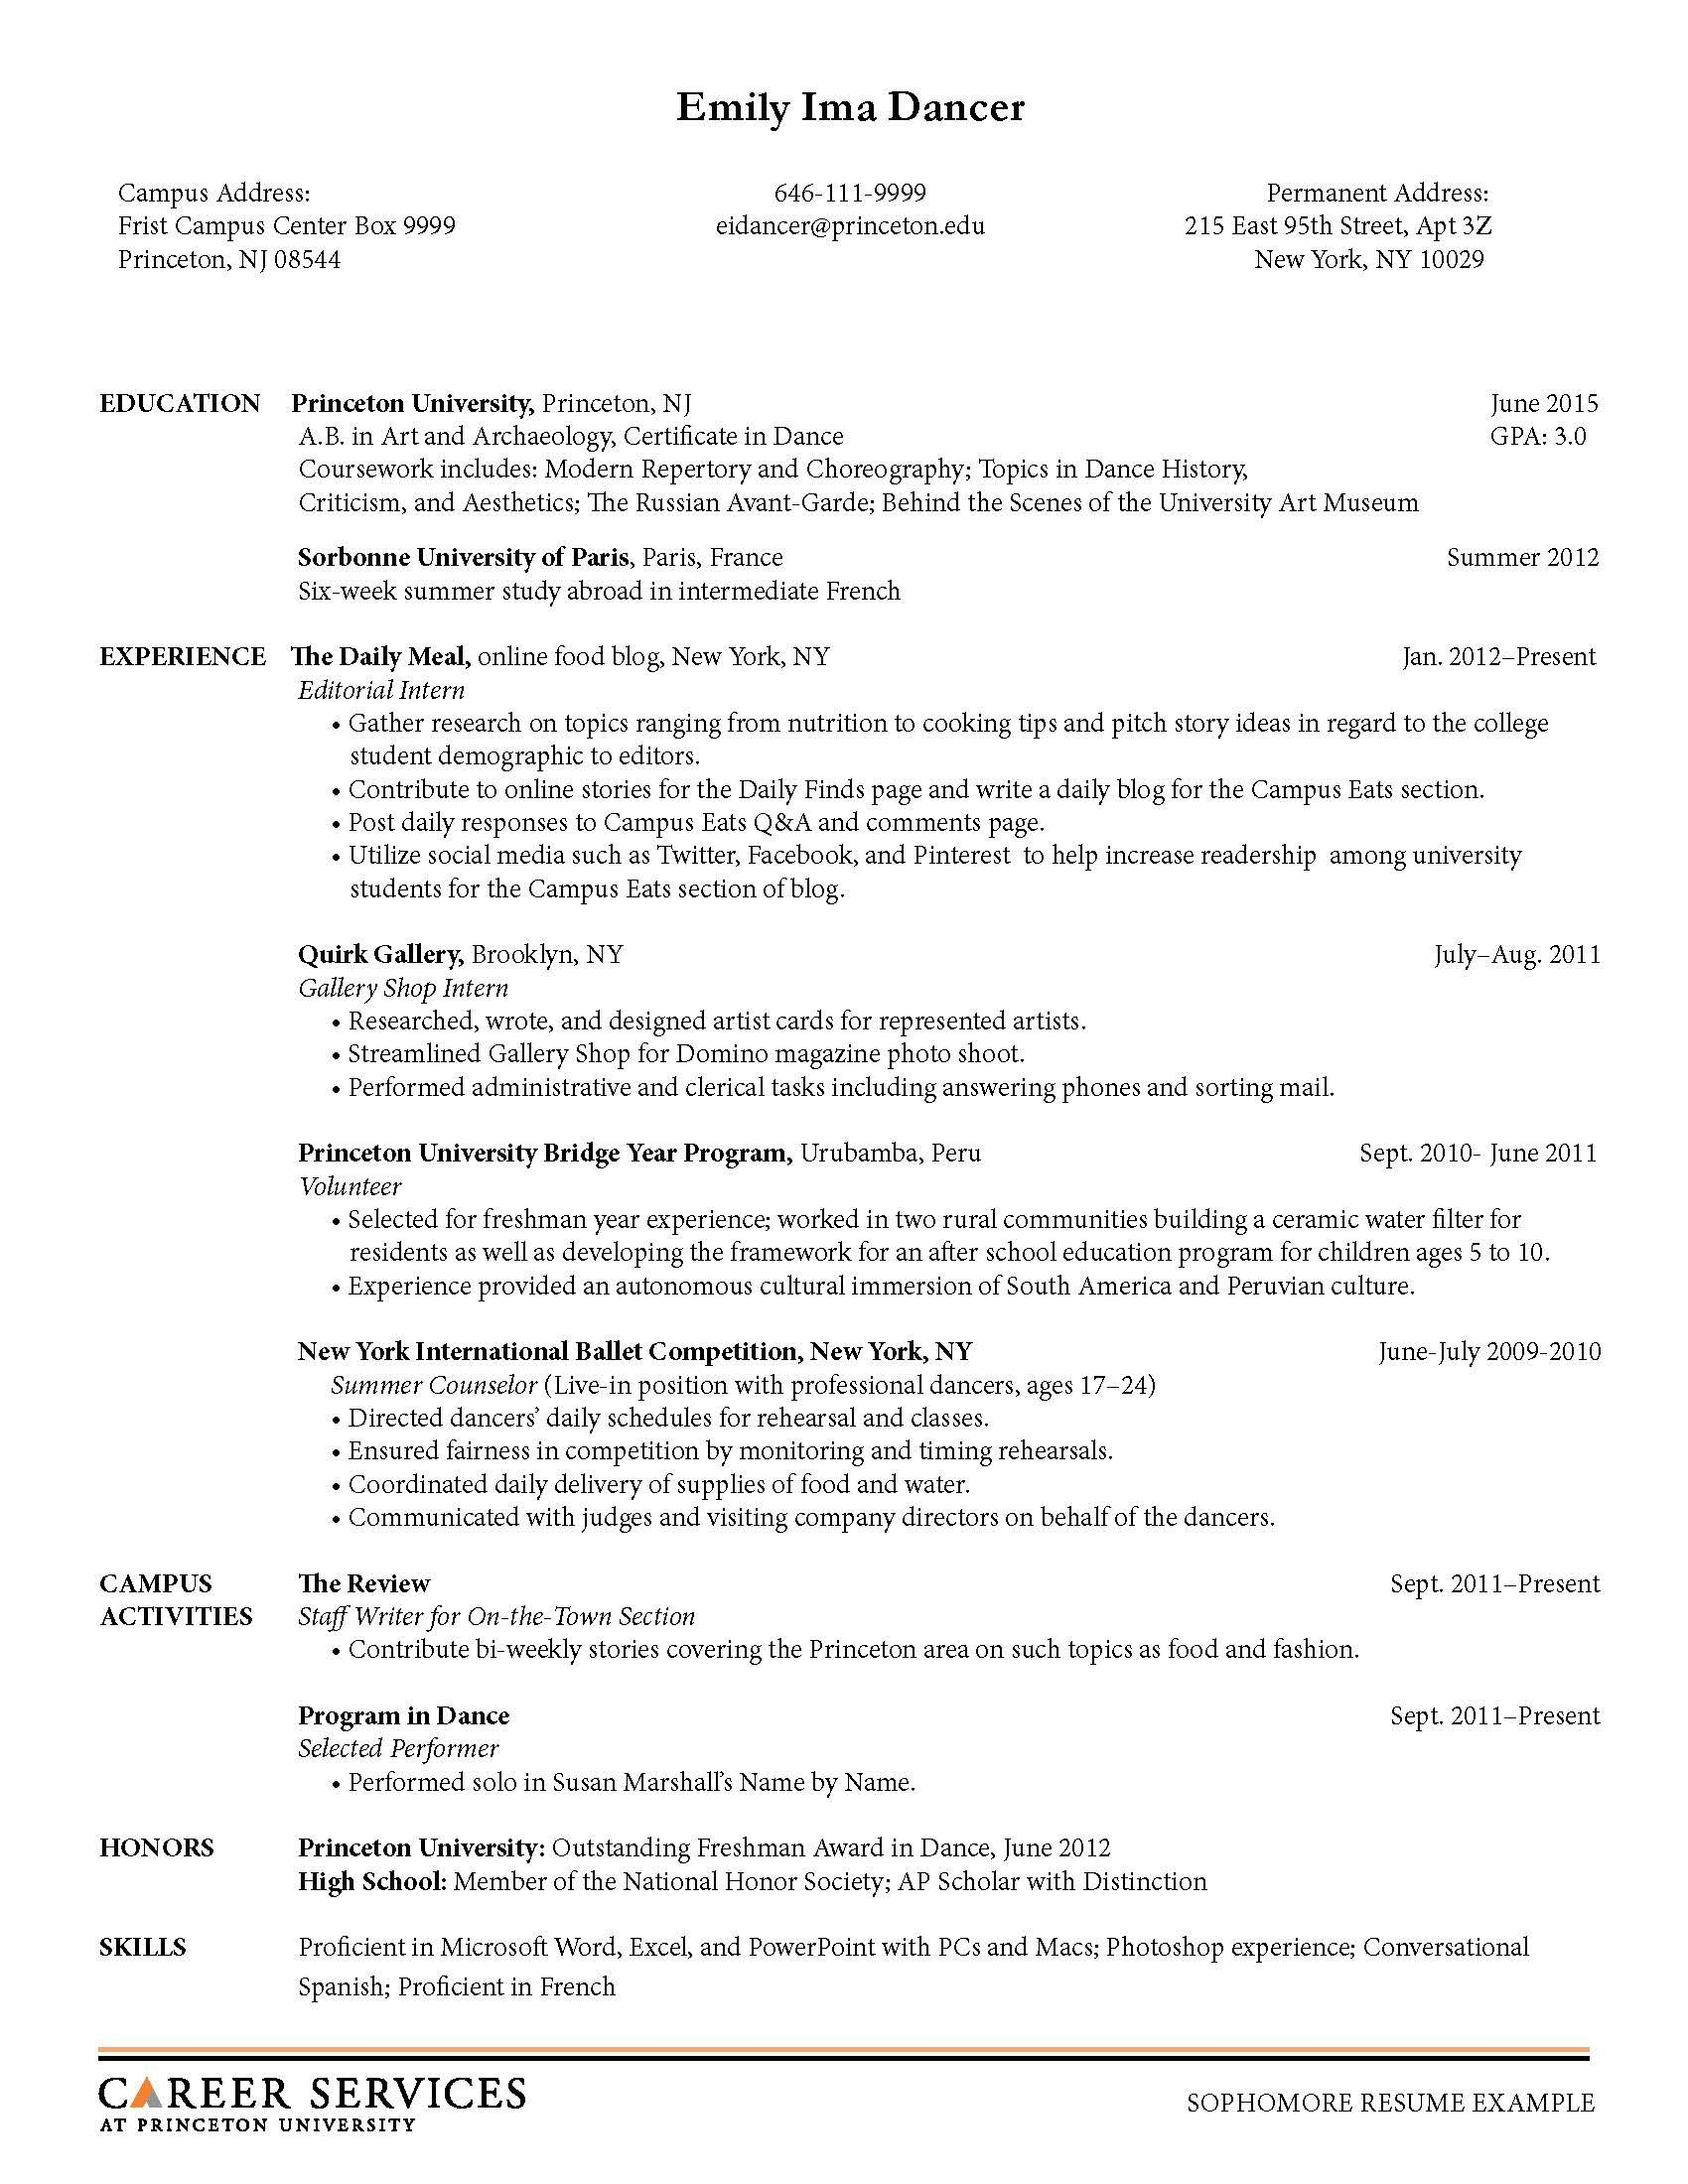 Opposenewapstandardsus  Unusual Sample Resume Resume And Career On Pinterest With Exciting Bartender Resume Sample Besides How To Do A Job Resume Furthermore Warehouse Resume Sample With Delightful Generic Resume Objective Also Example Cover Letters For Resume In Addition Professional Resume Templates Word And Construction Management Resume As Well As Production Supervisor Resume Additionally Lpn Resume Sample From Pinterestcom With Opposenewapstandardsus  Exciting Sample Resume Resume And Career On Pinterest With Delightful Bartender Resume Sample Besides How To Do A Job Resume Furthermore Warehouse Resume Sample And Unusual Generic Resume Objective Also Example Cover Letters For Resume In Addition Professional Resume Templates Word From Pinterestcom